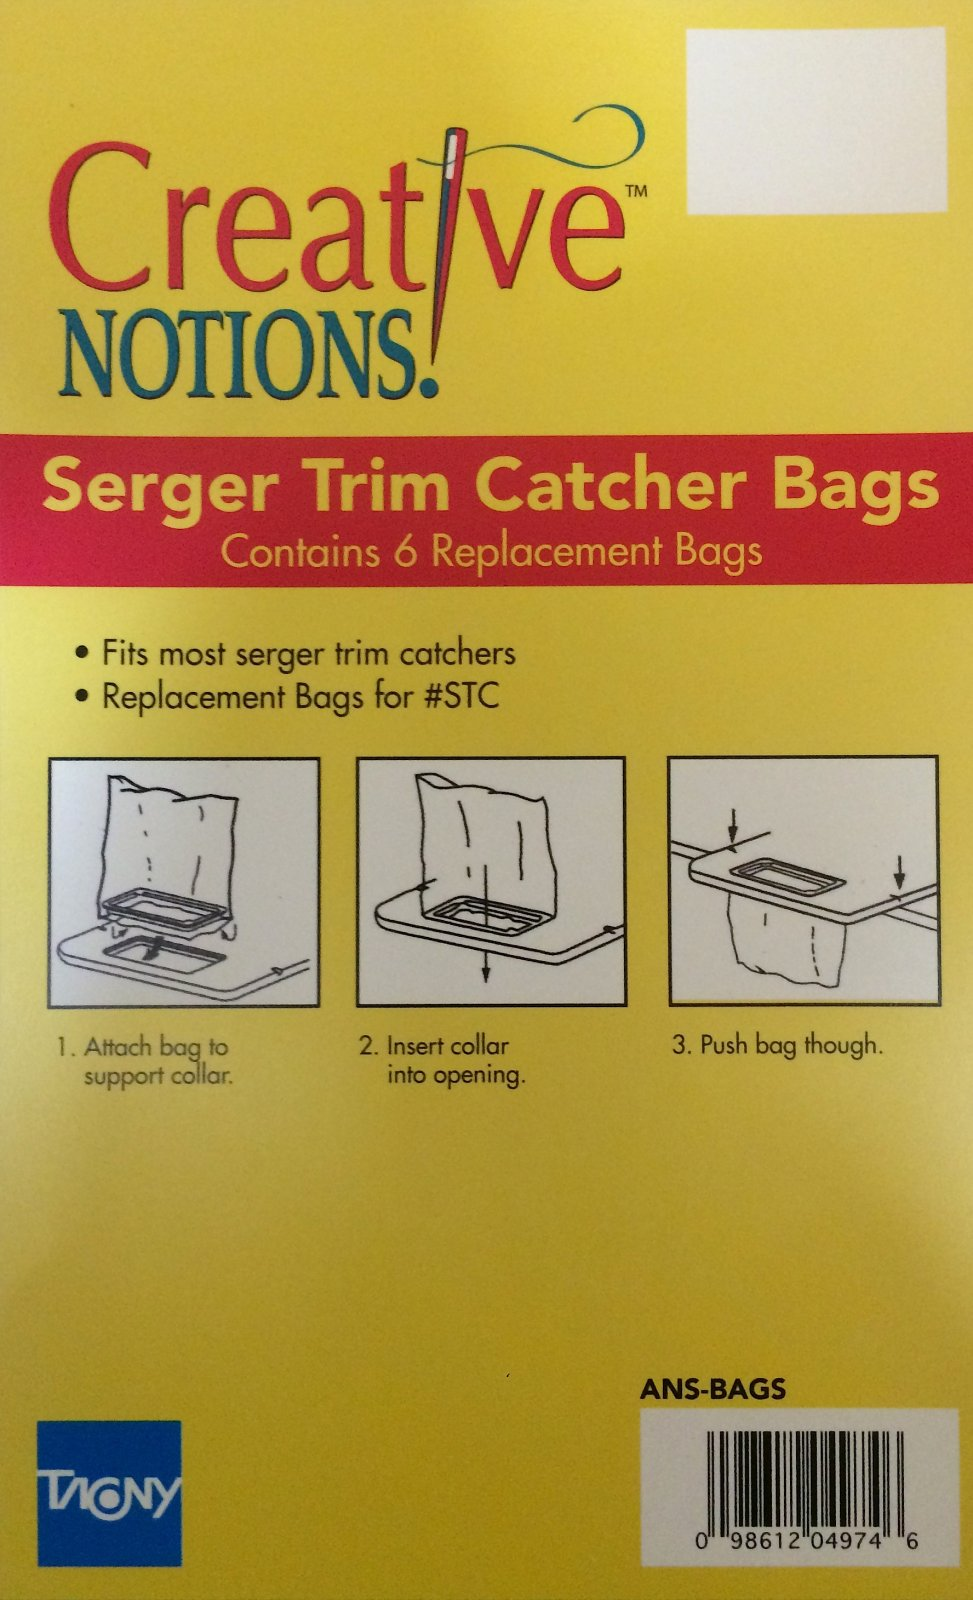 Serger Trim Catcher Bags